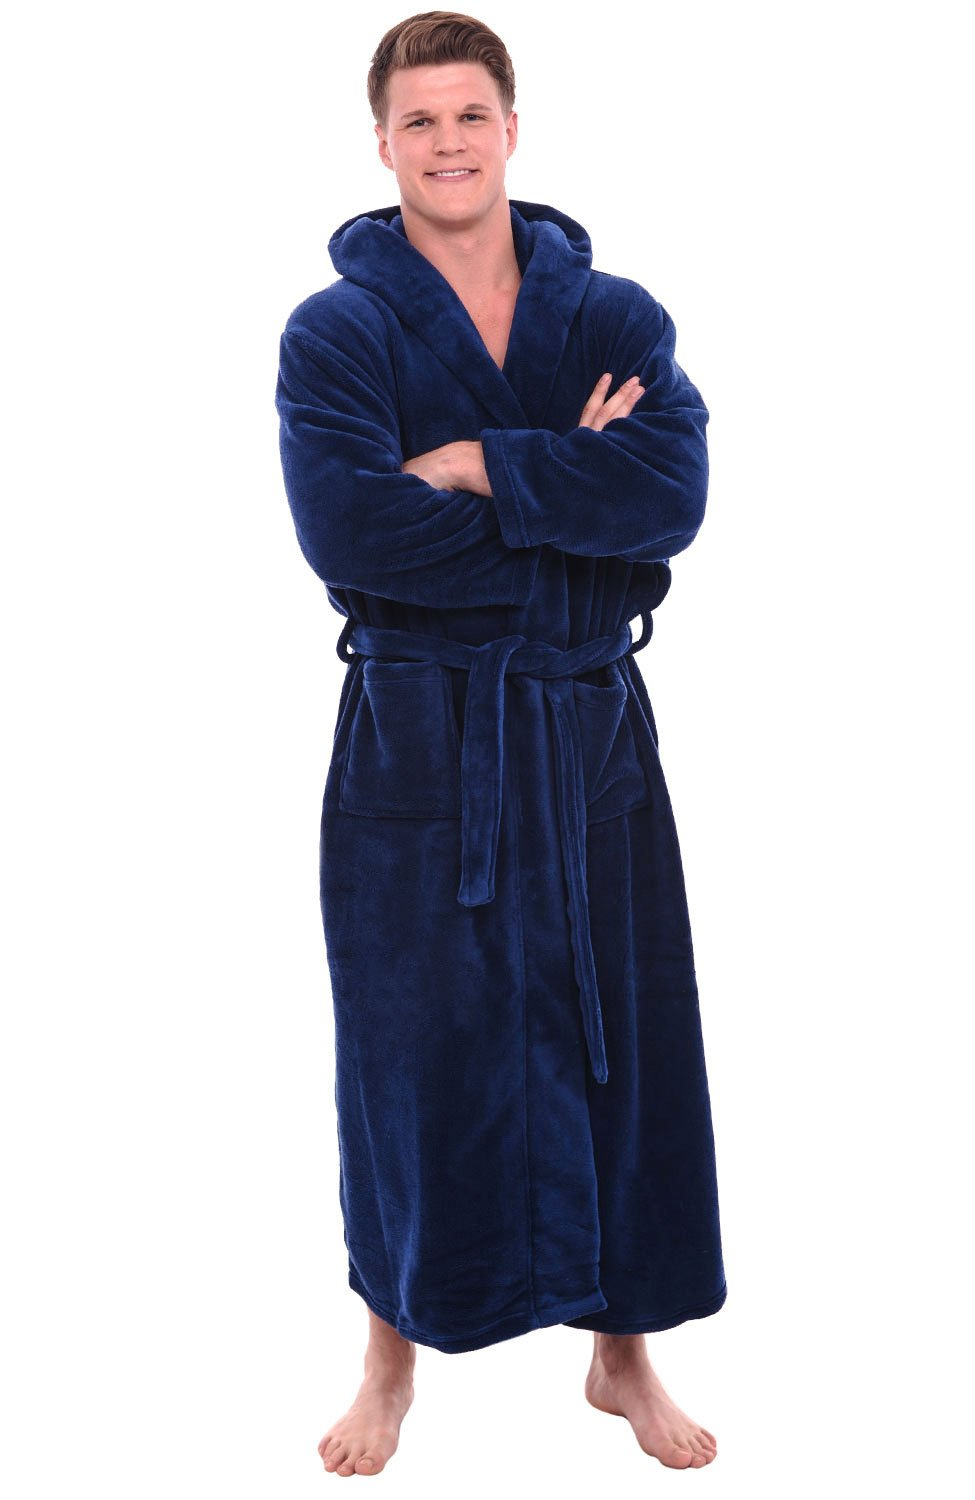 Alexander Del Rossa Mens Fleece Robe, Long Hooded Bathrobe, 1XL 2XL Navy Blue (A0125NBL2X)